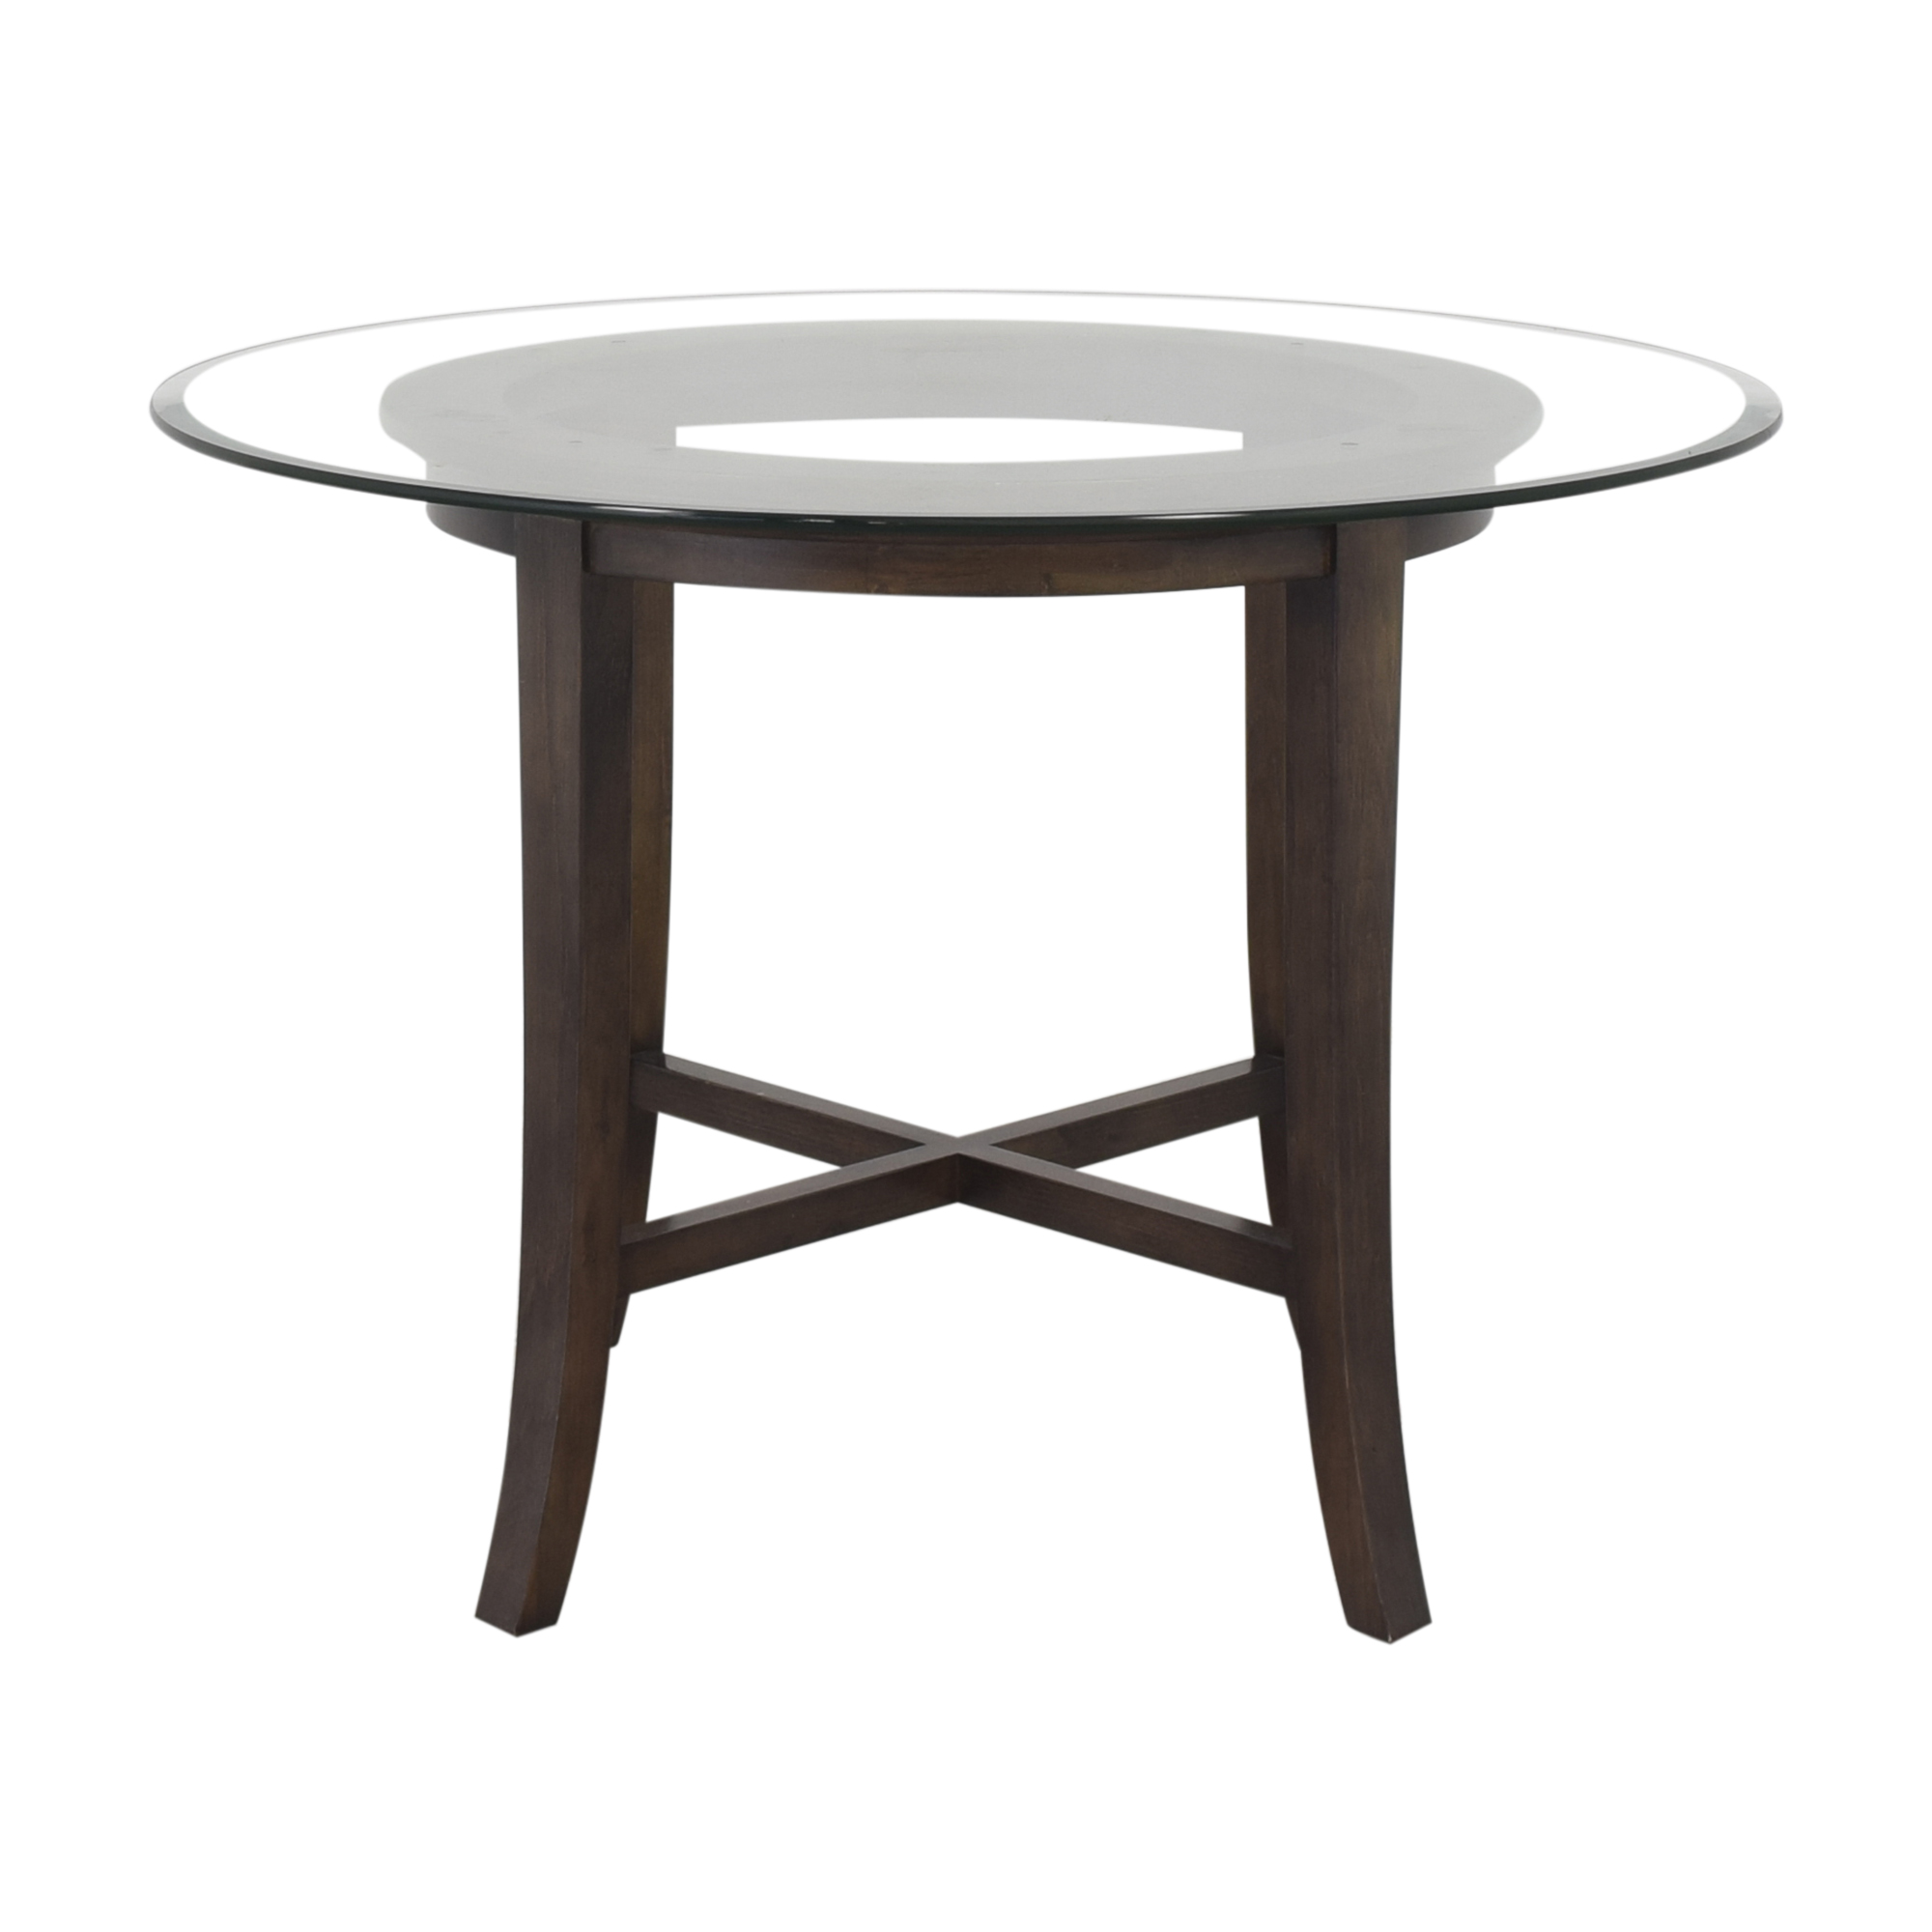 buy Crate & Barrel Halo Dining Table Crate & Barrel Tables